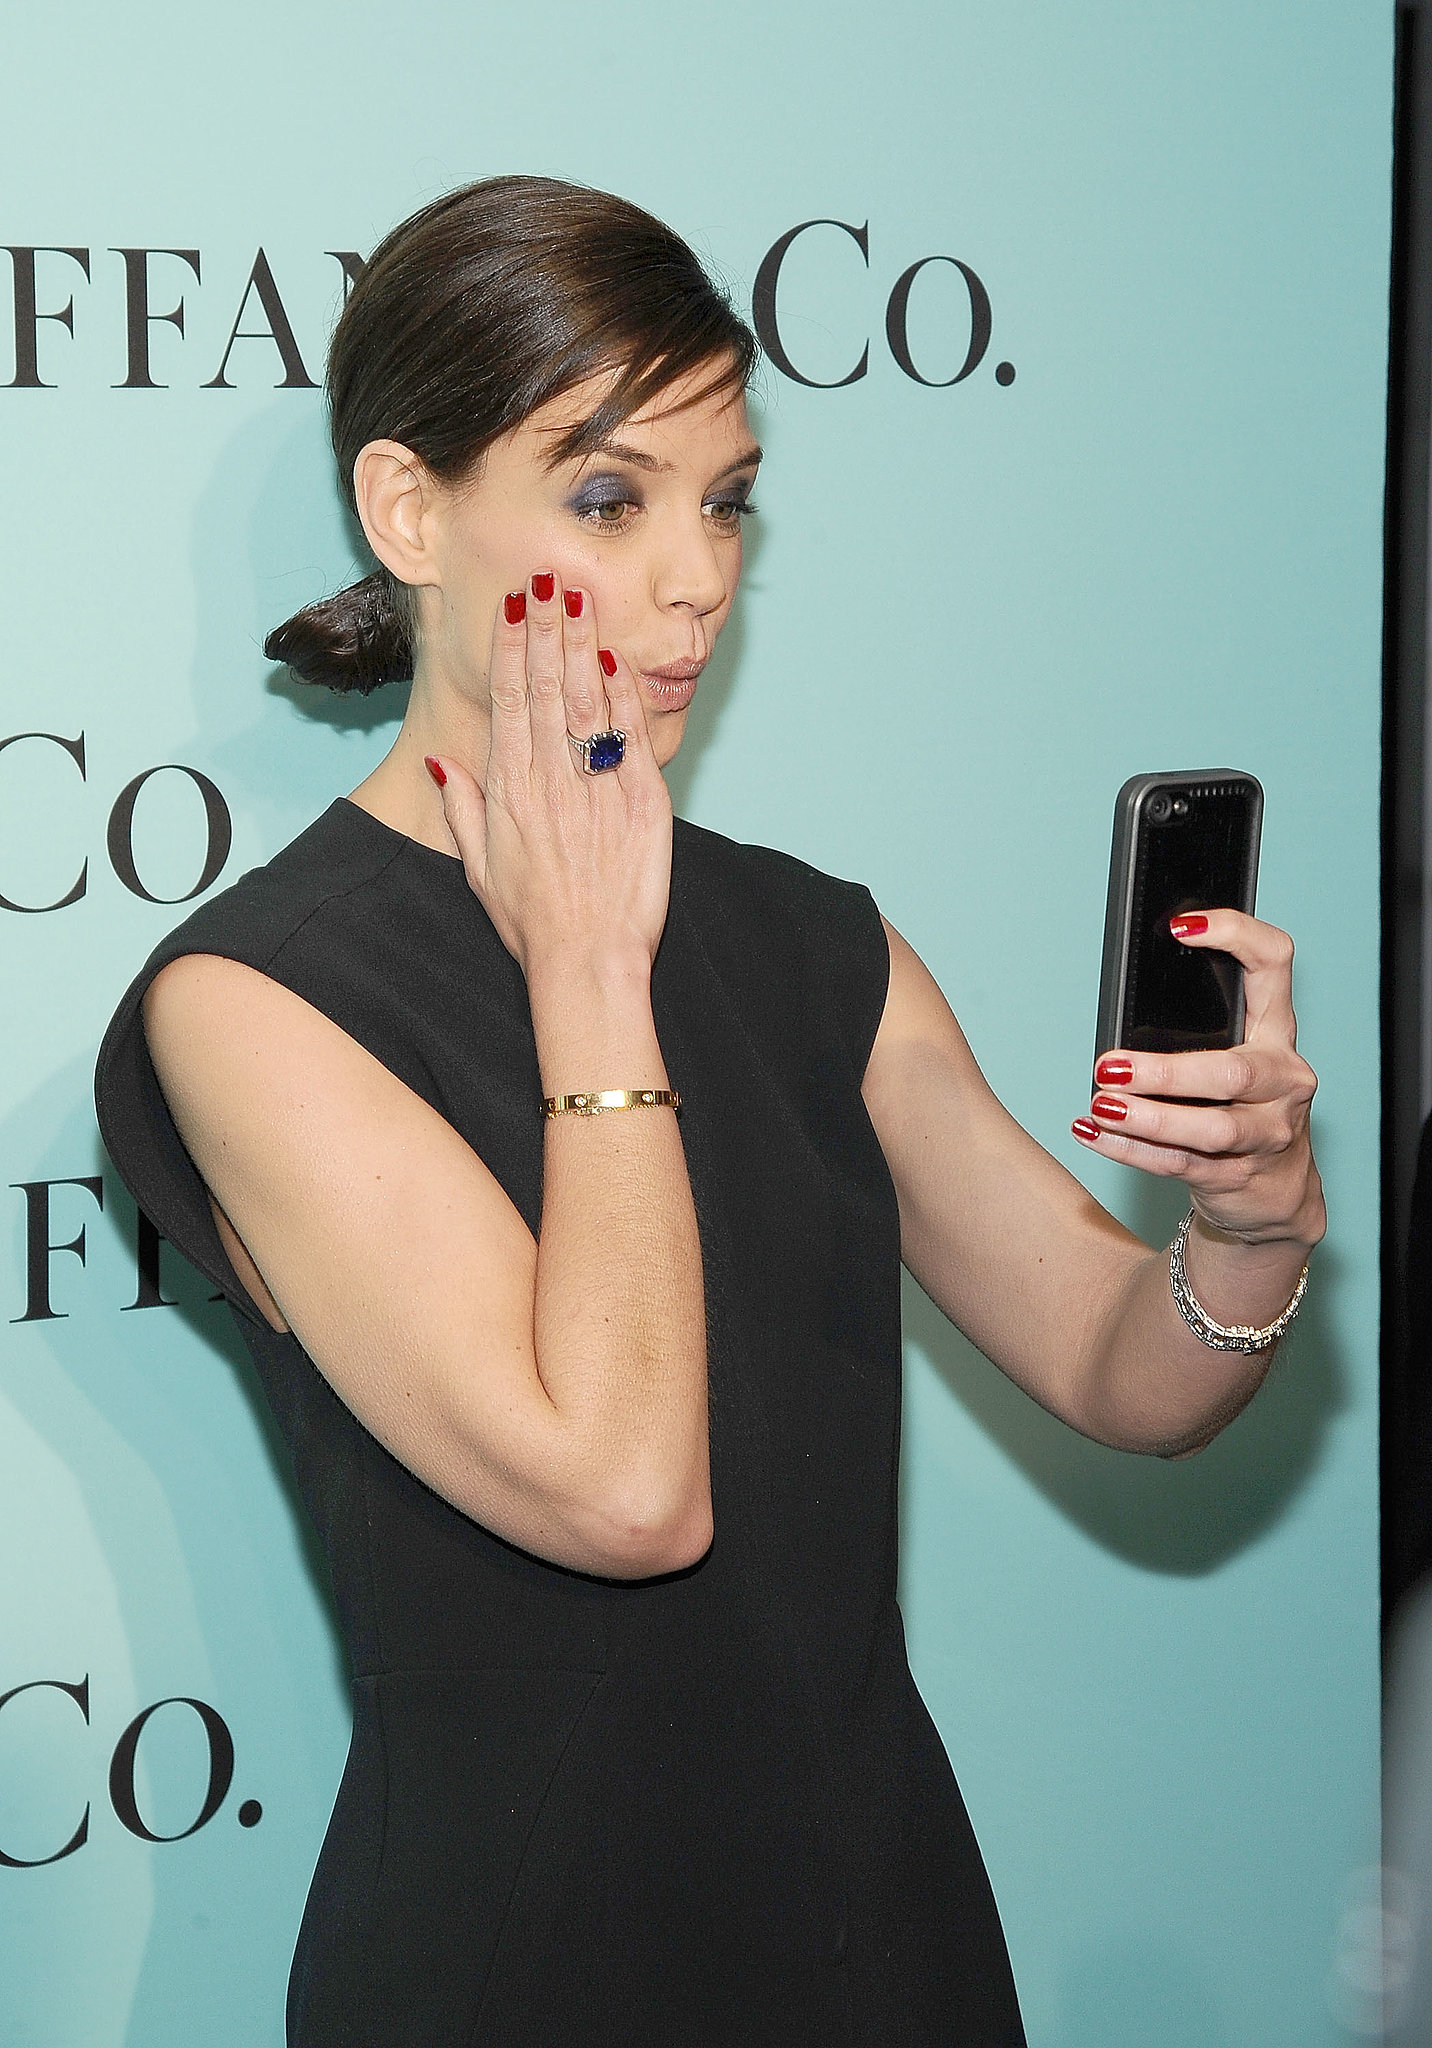 In April 2014, Katie Holmes snapped a selfie at an event in NYC.